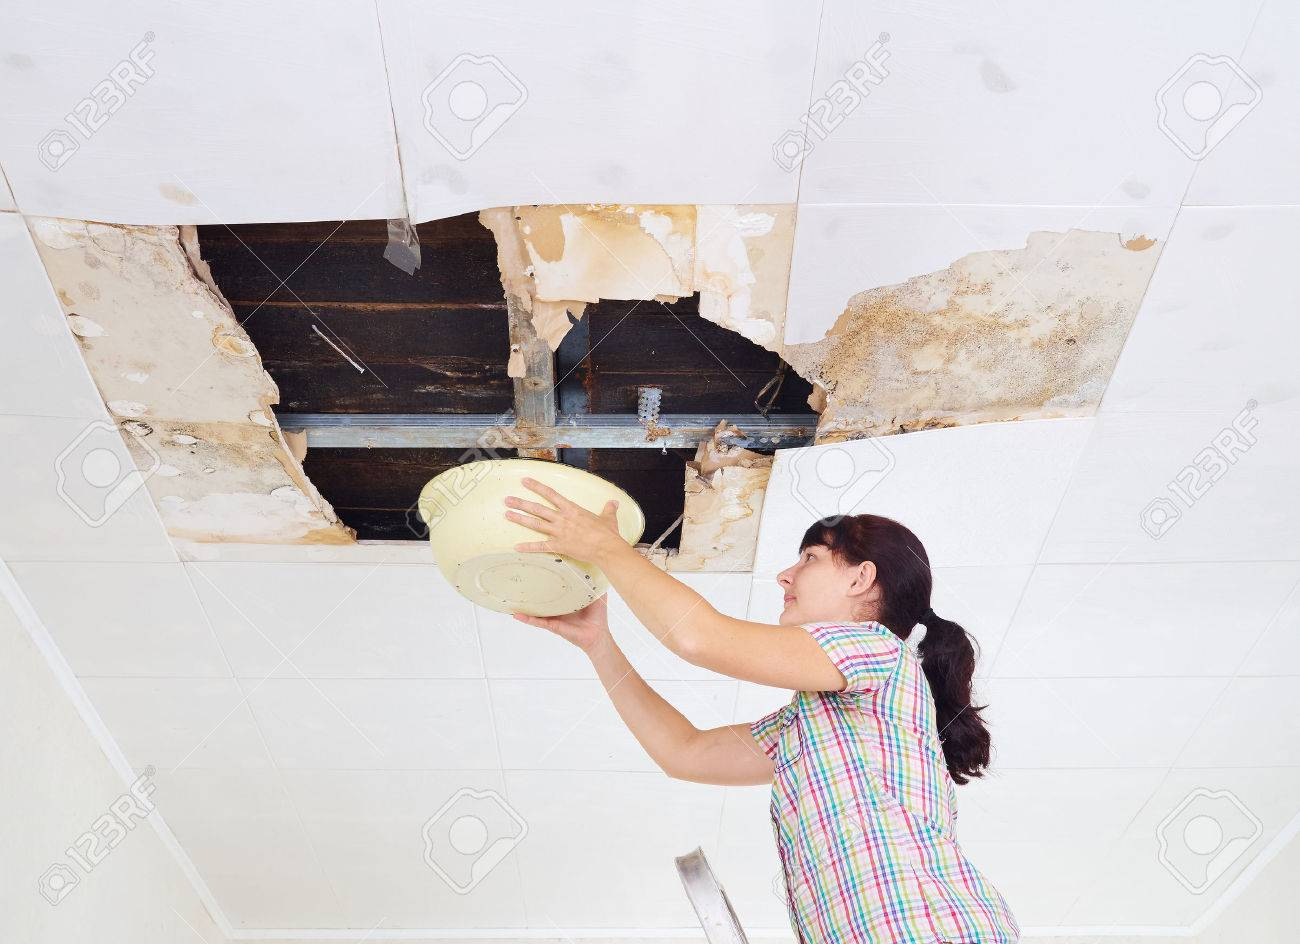 Young Woman Collecting Water In basin From Ceiling. Ceiling panels damaged huge hole in roof from rainwater leakage.Water damaged ceiling . - 64106862